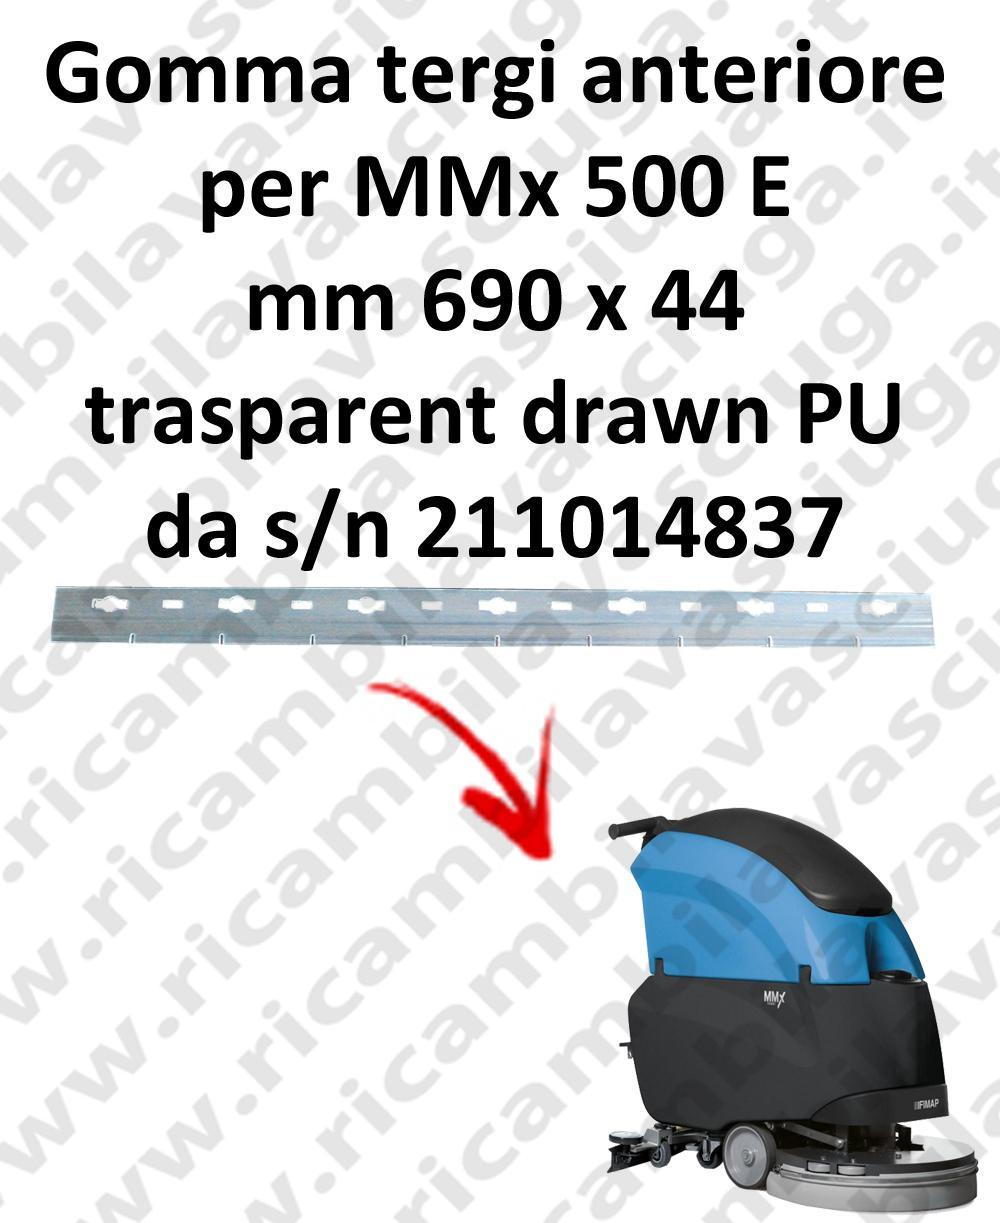 MMx 500 E Front Squeegee rubber for FIMAP accessories, reaplacement, spare parts,o scrubber dryer squeegee